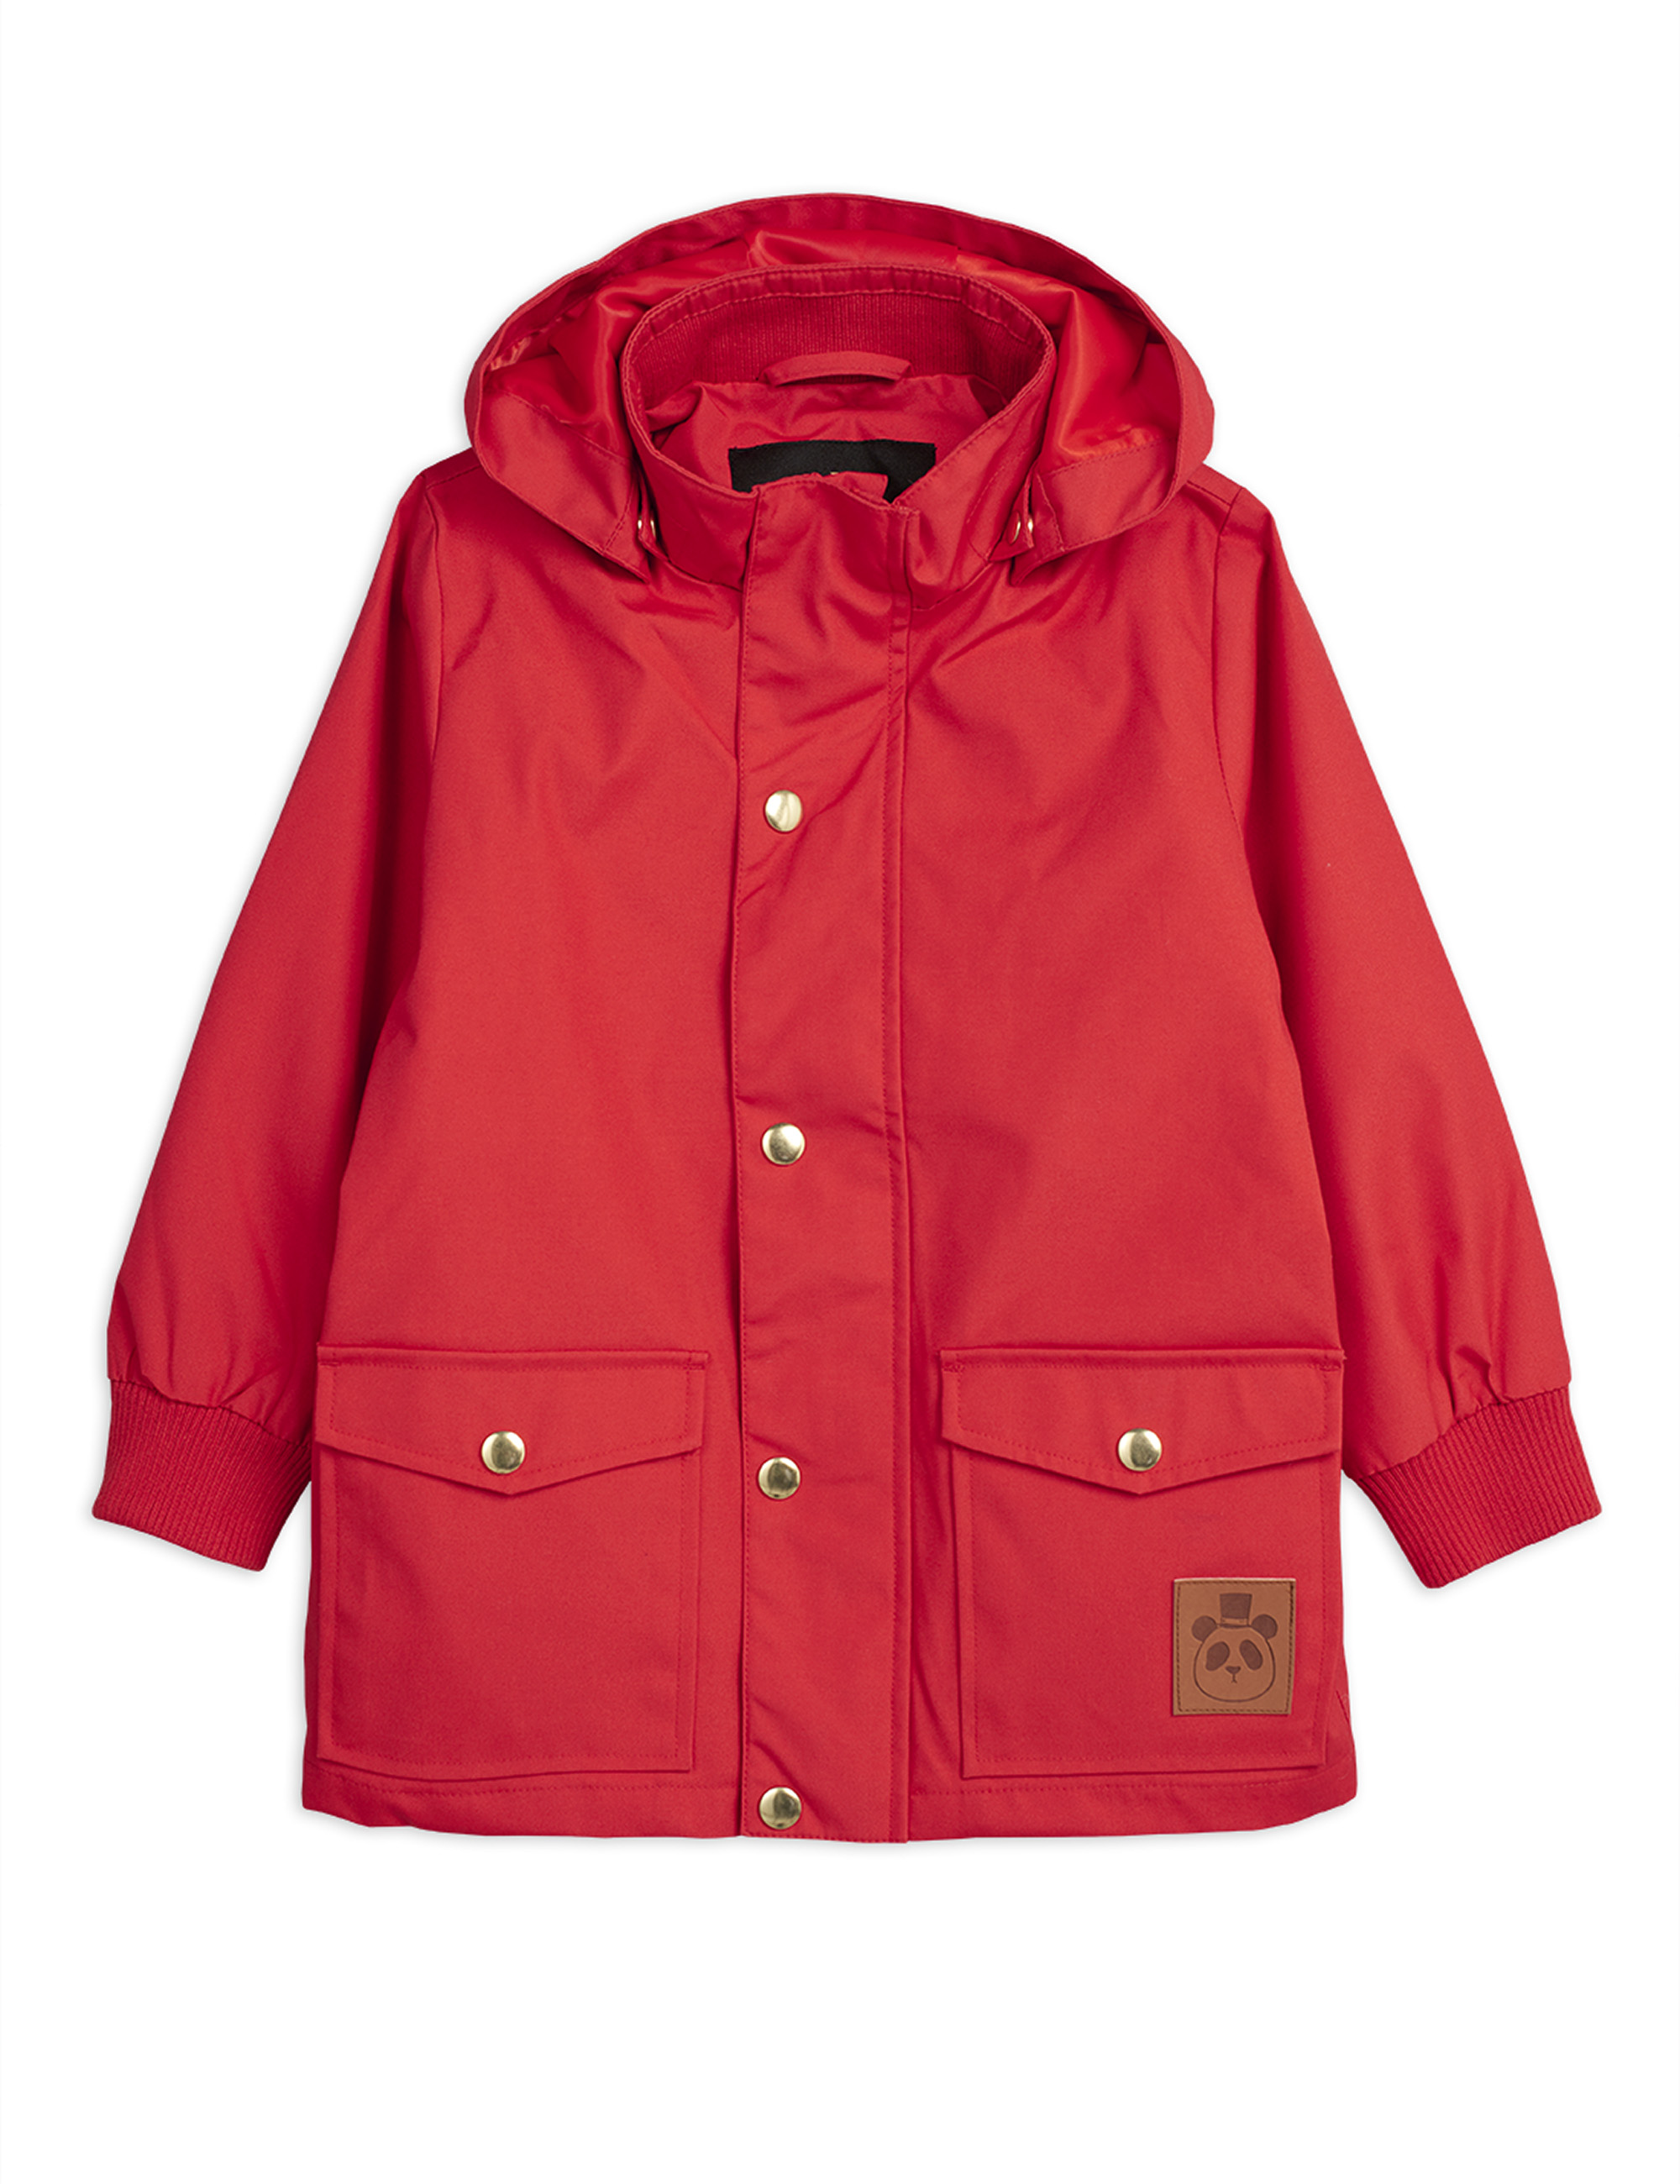 mini-rodini-pico-red-jacka-linkoping-brandsforkids